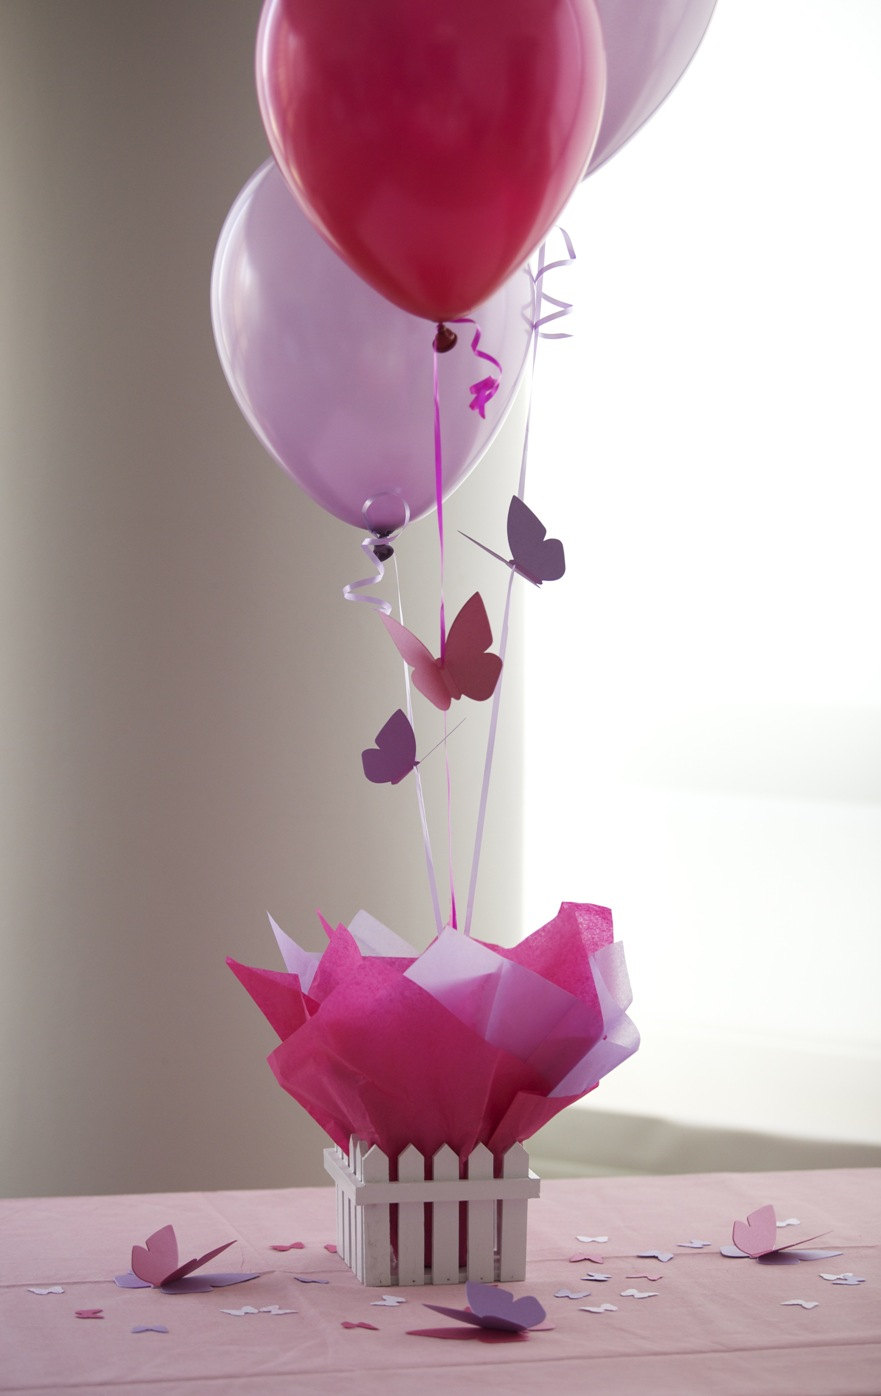 Balloon Designs Pictures: Balloon Centerpieces For Decorations